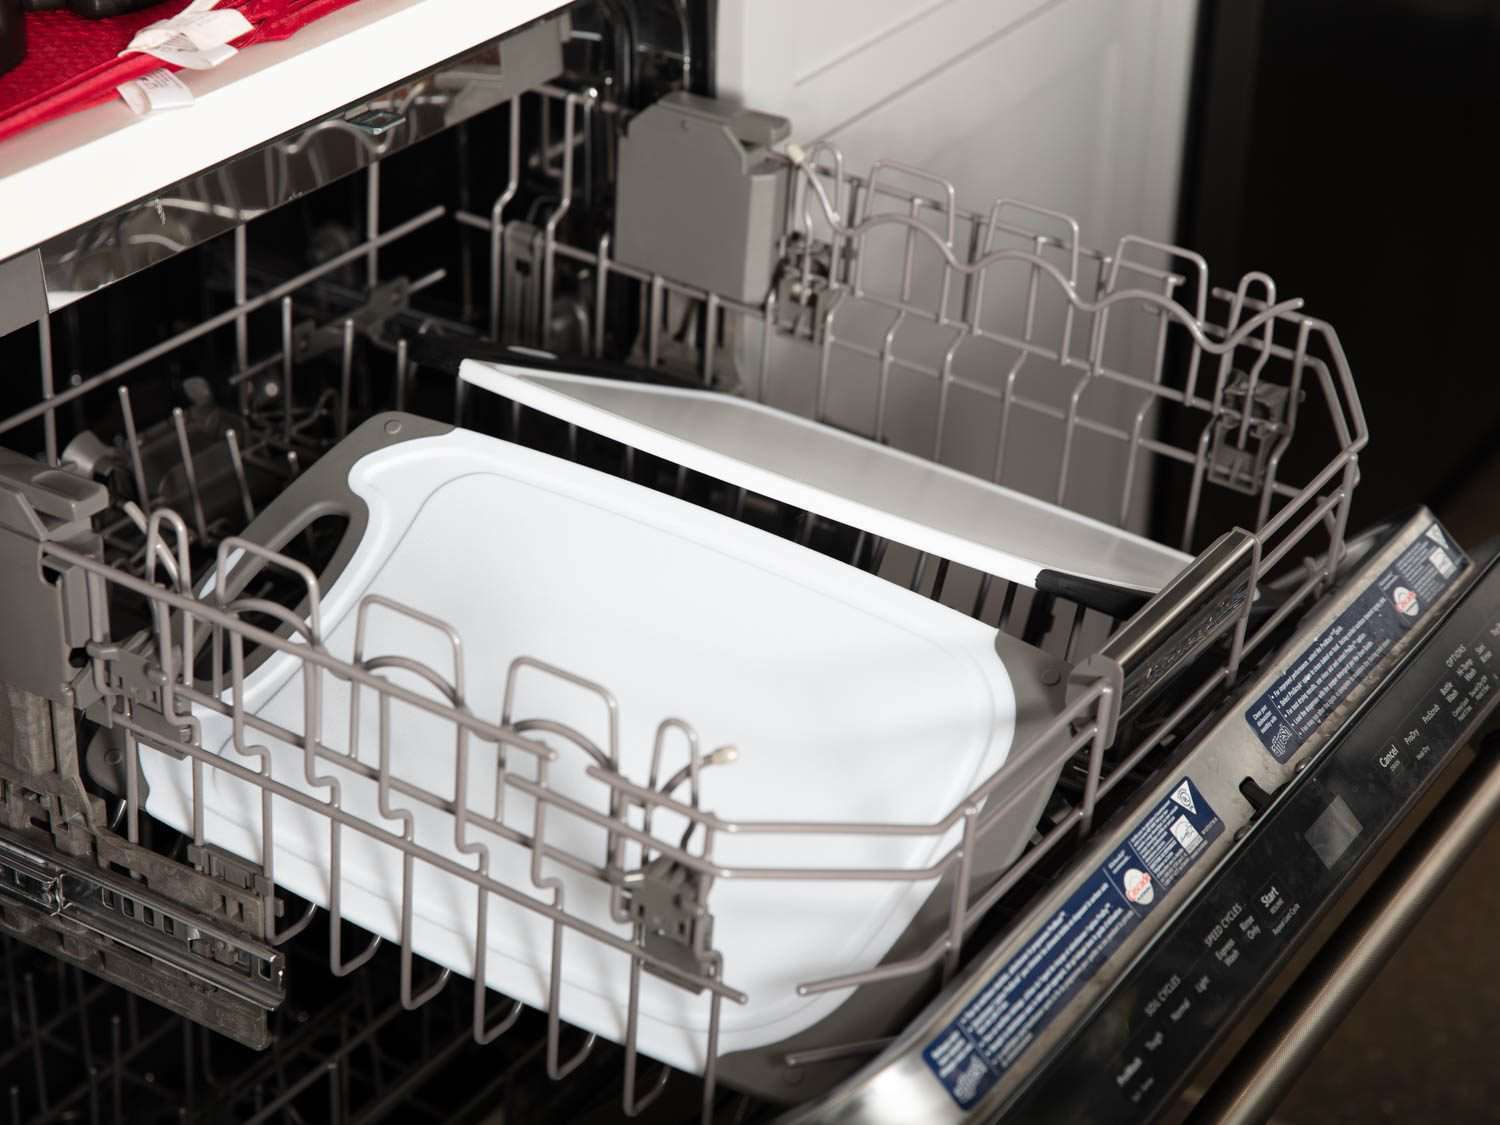 Putting cutting boards in the dishwasher tests their dishwasher-safe claims.